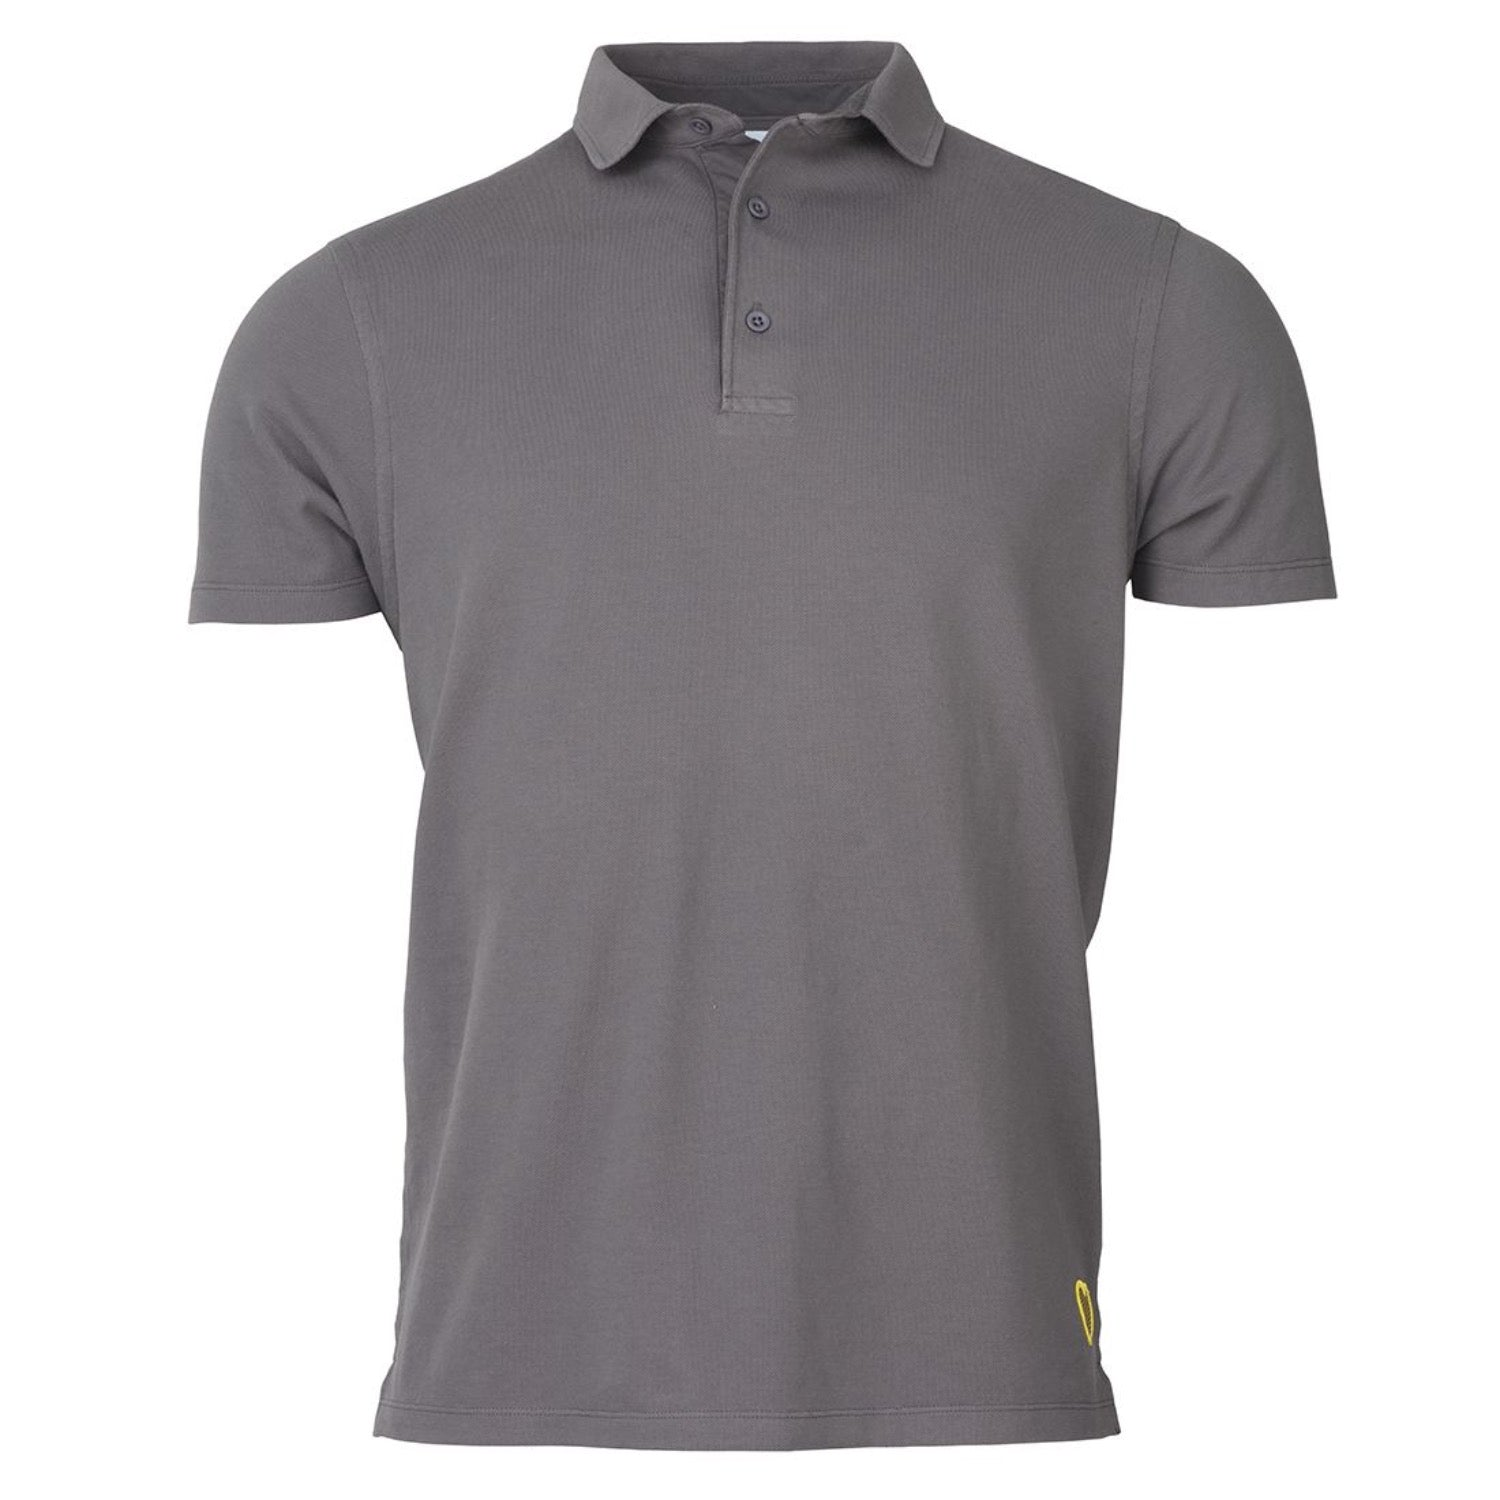 Tweedlove Heart Badge Polo - Steel